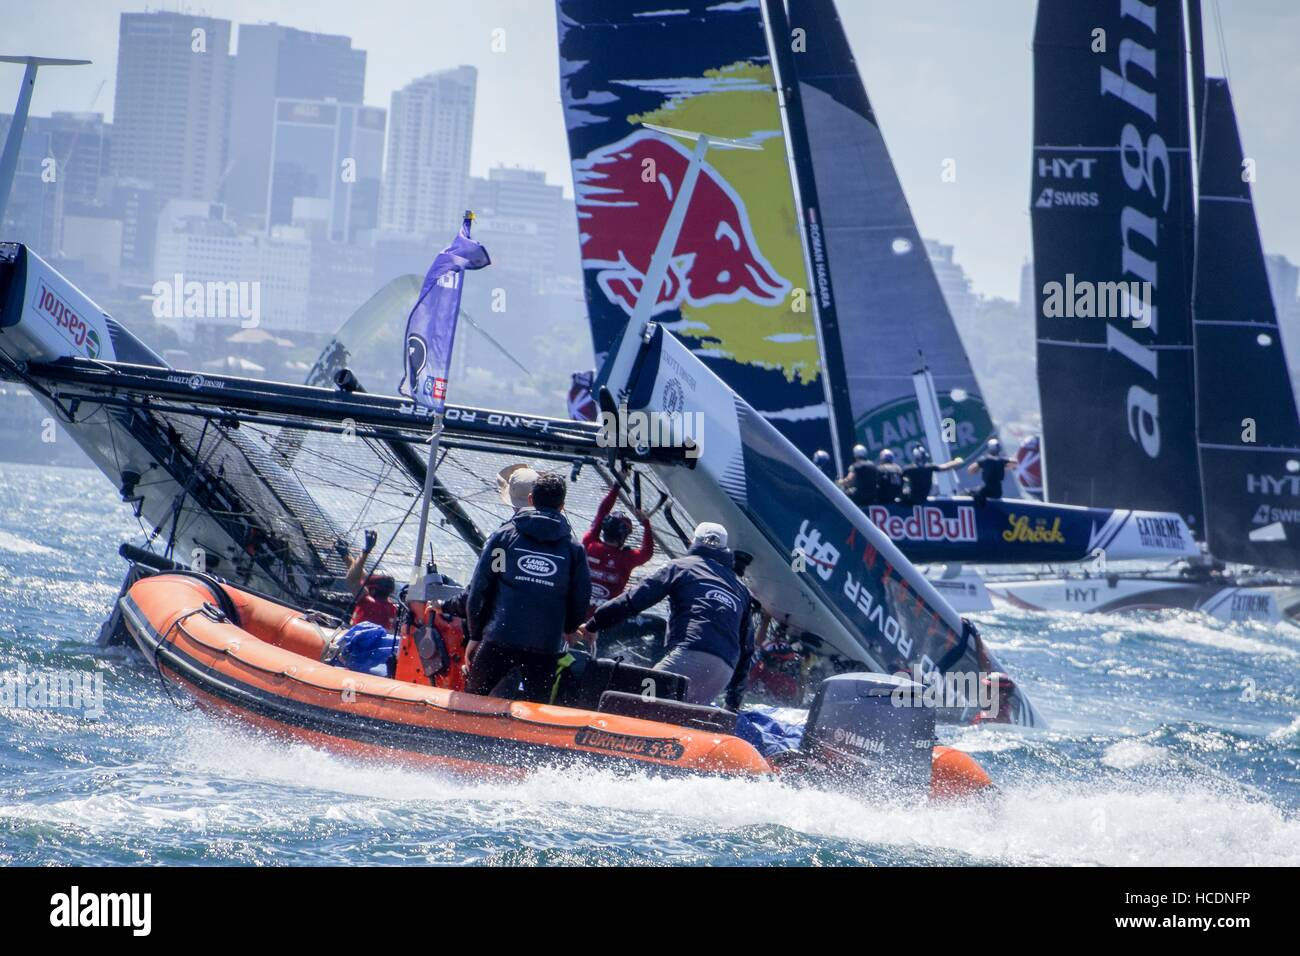 Sydney, Australia. 08th Dec, 2016. Rescue vessels arrive after Land Rover BAR Academy (GBR), skippered by Neil Hunter - Stock Image